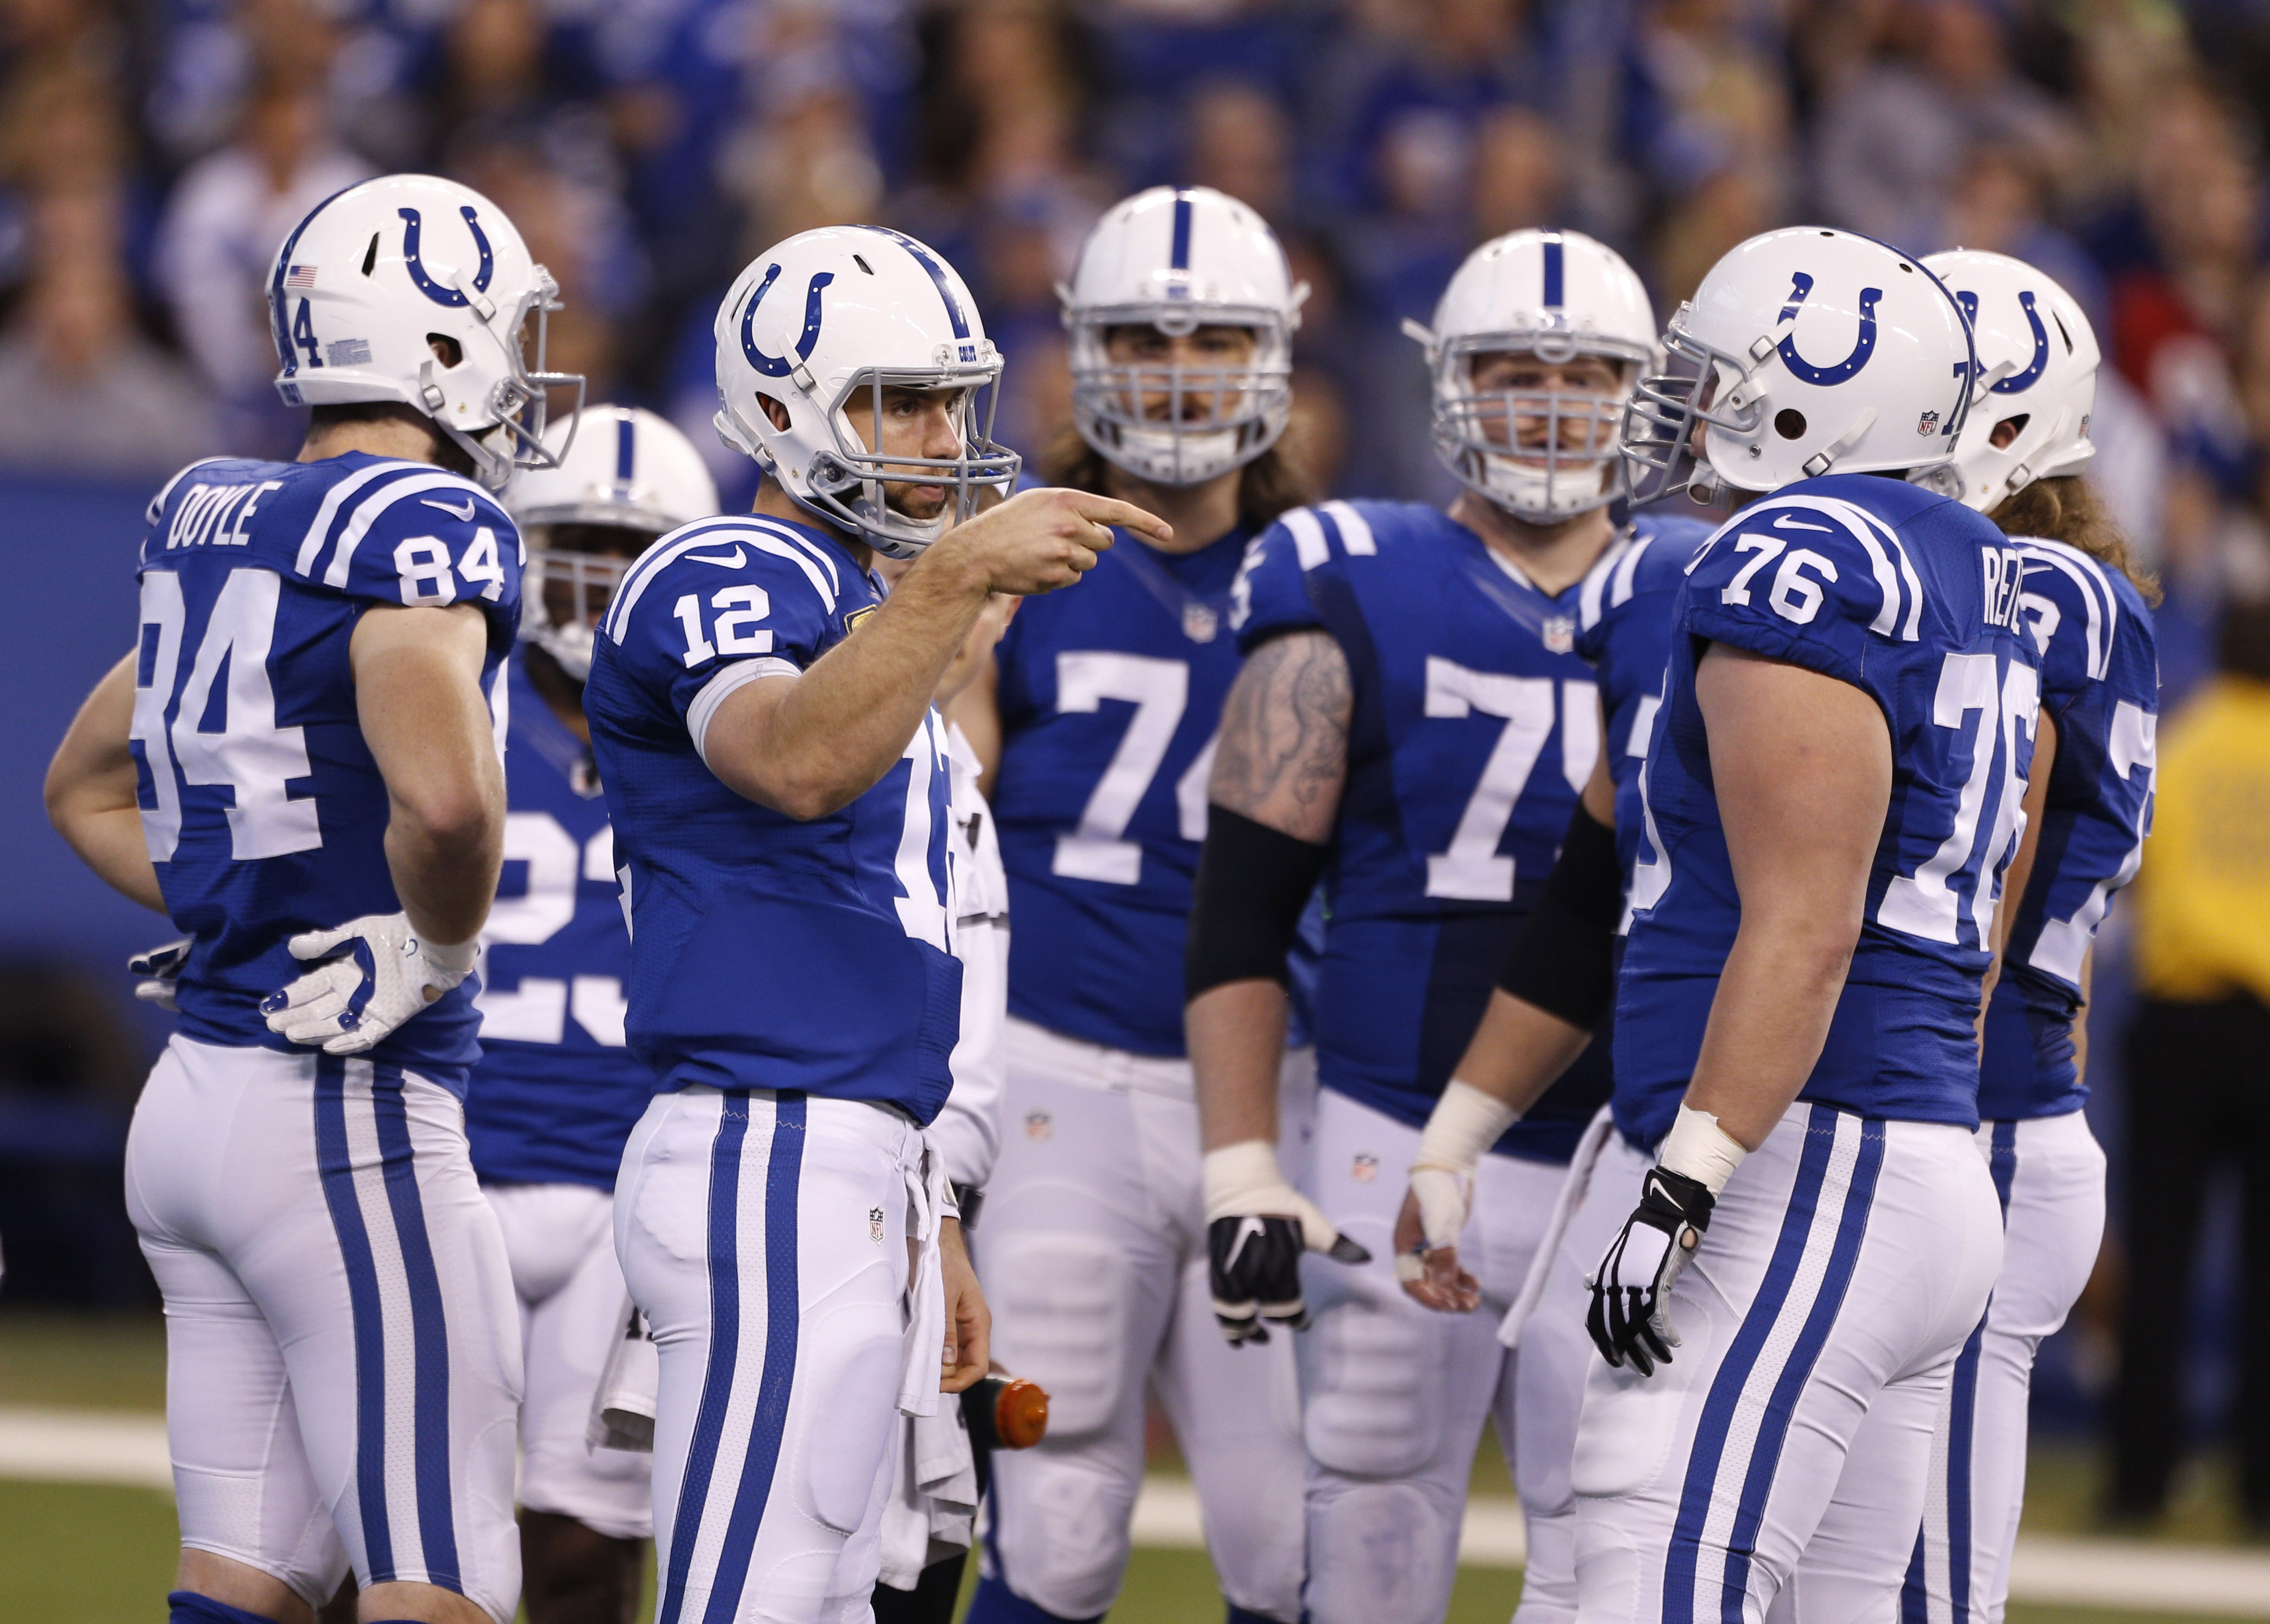 9740849-nfl-houston-texans-at-indianapolis-colts